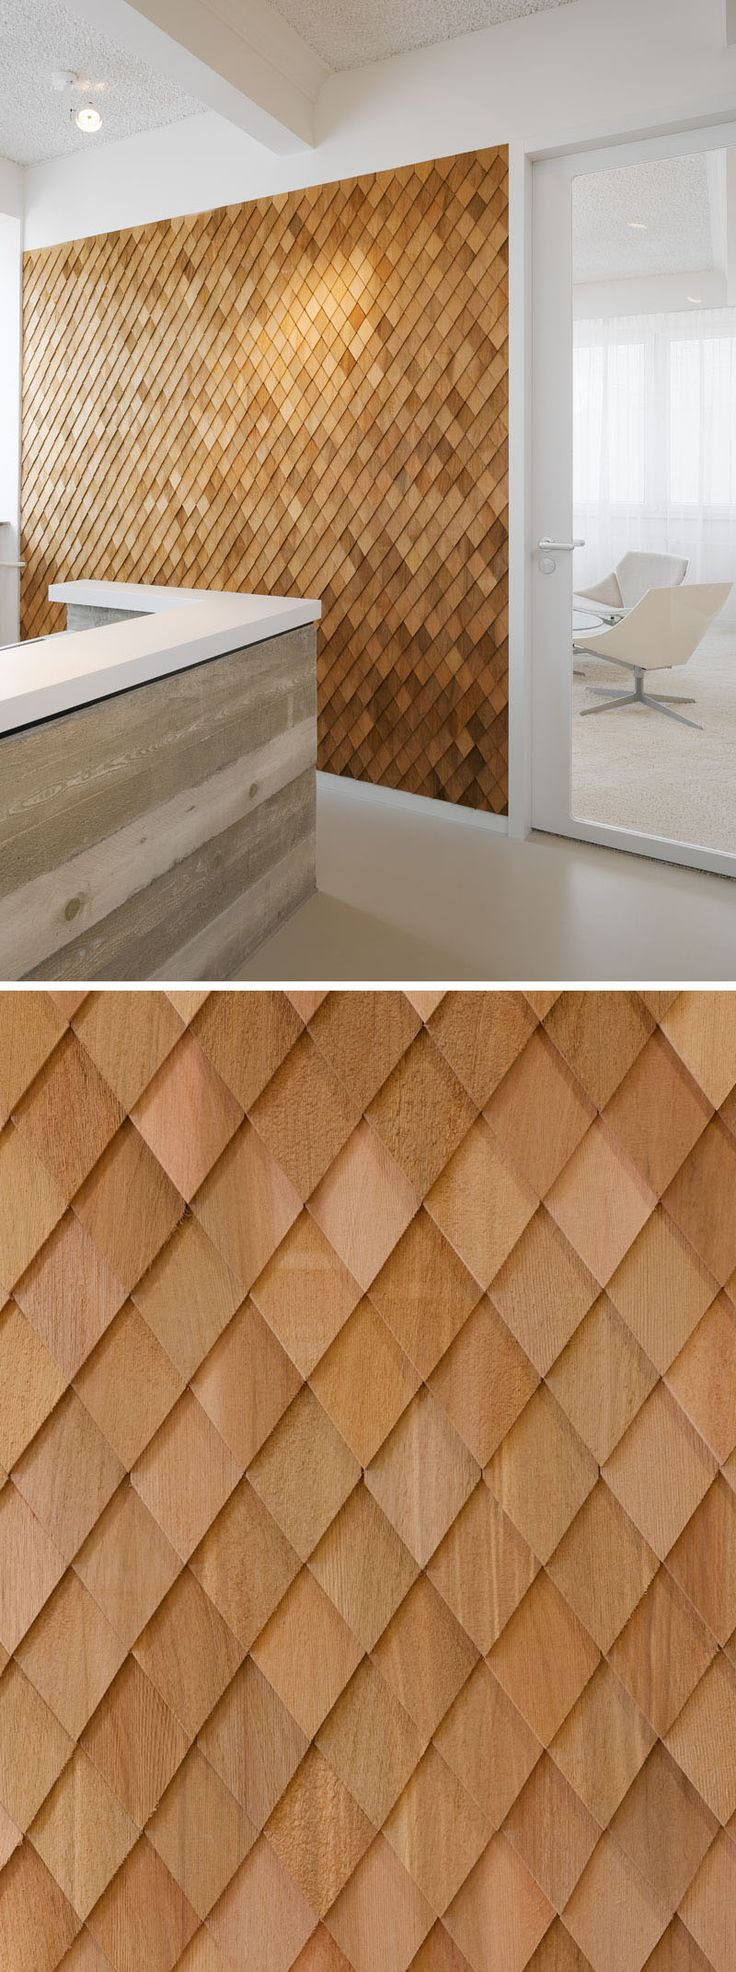 interior design idea in this contemporary office interior the designers used wooden shingles on - Wood Designs For Walls